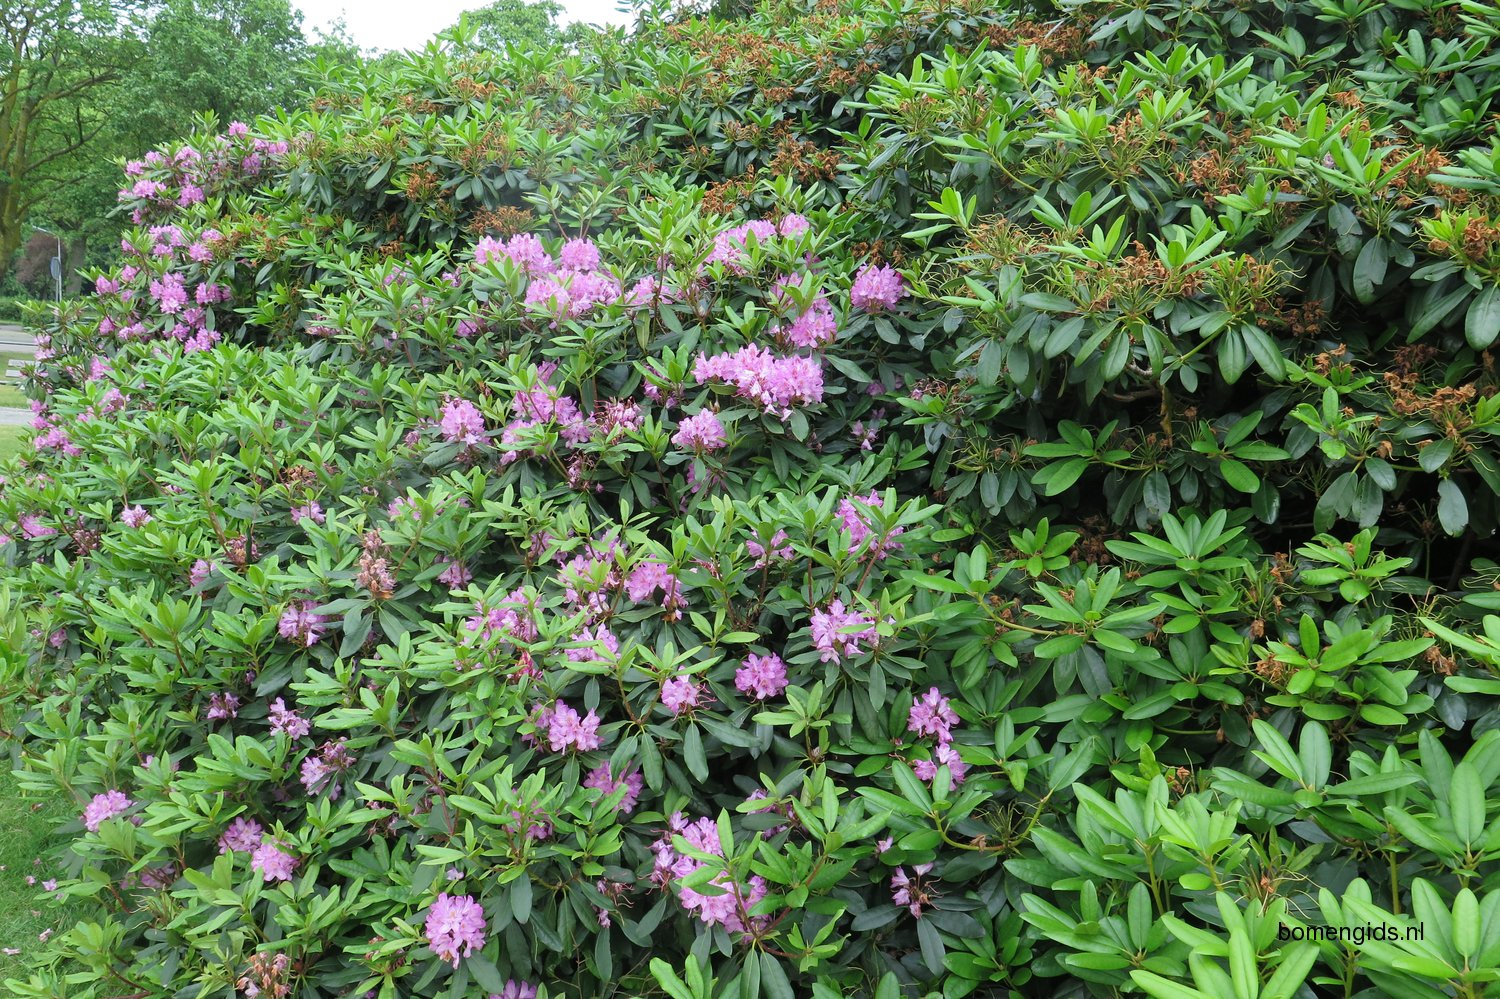 rhododendron hispanic single men Azaleas are grown for their prolific spring blooms there are many variety and color options to choose from including shades of pink, red, purple, white, and orange.